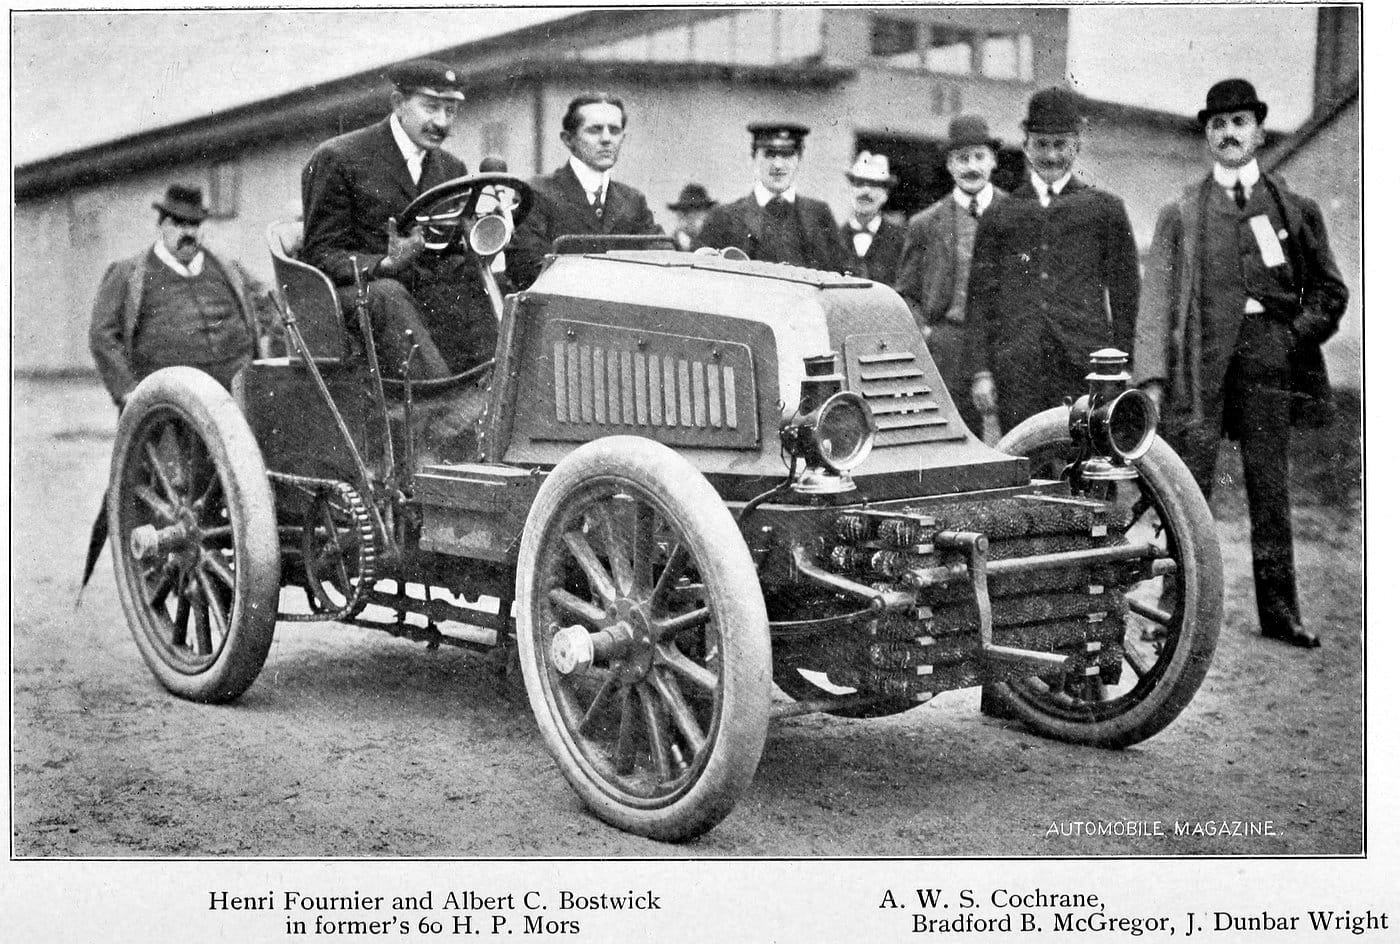 Henri Fournier and company in 60 HP Mors (1902)